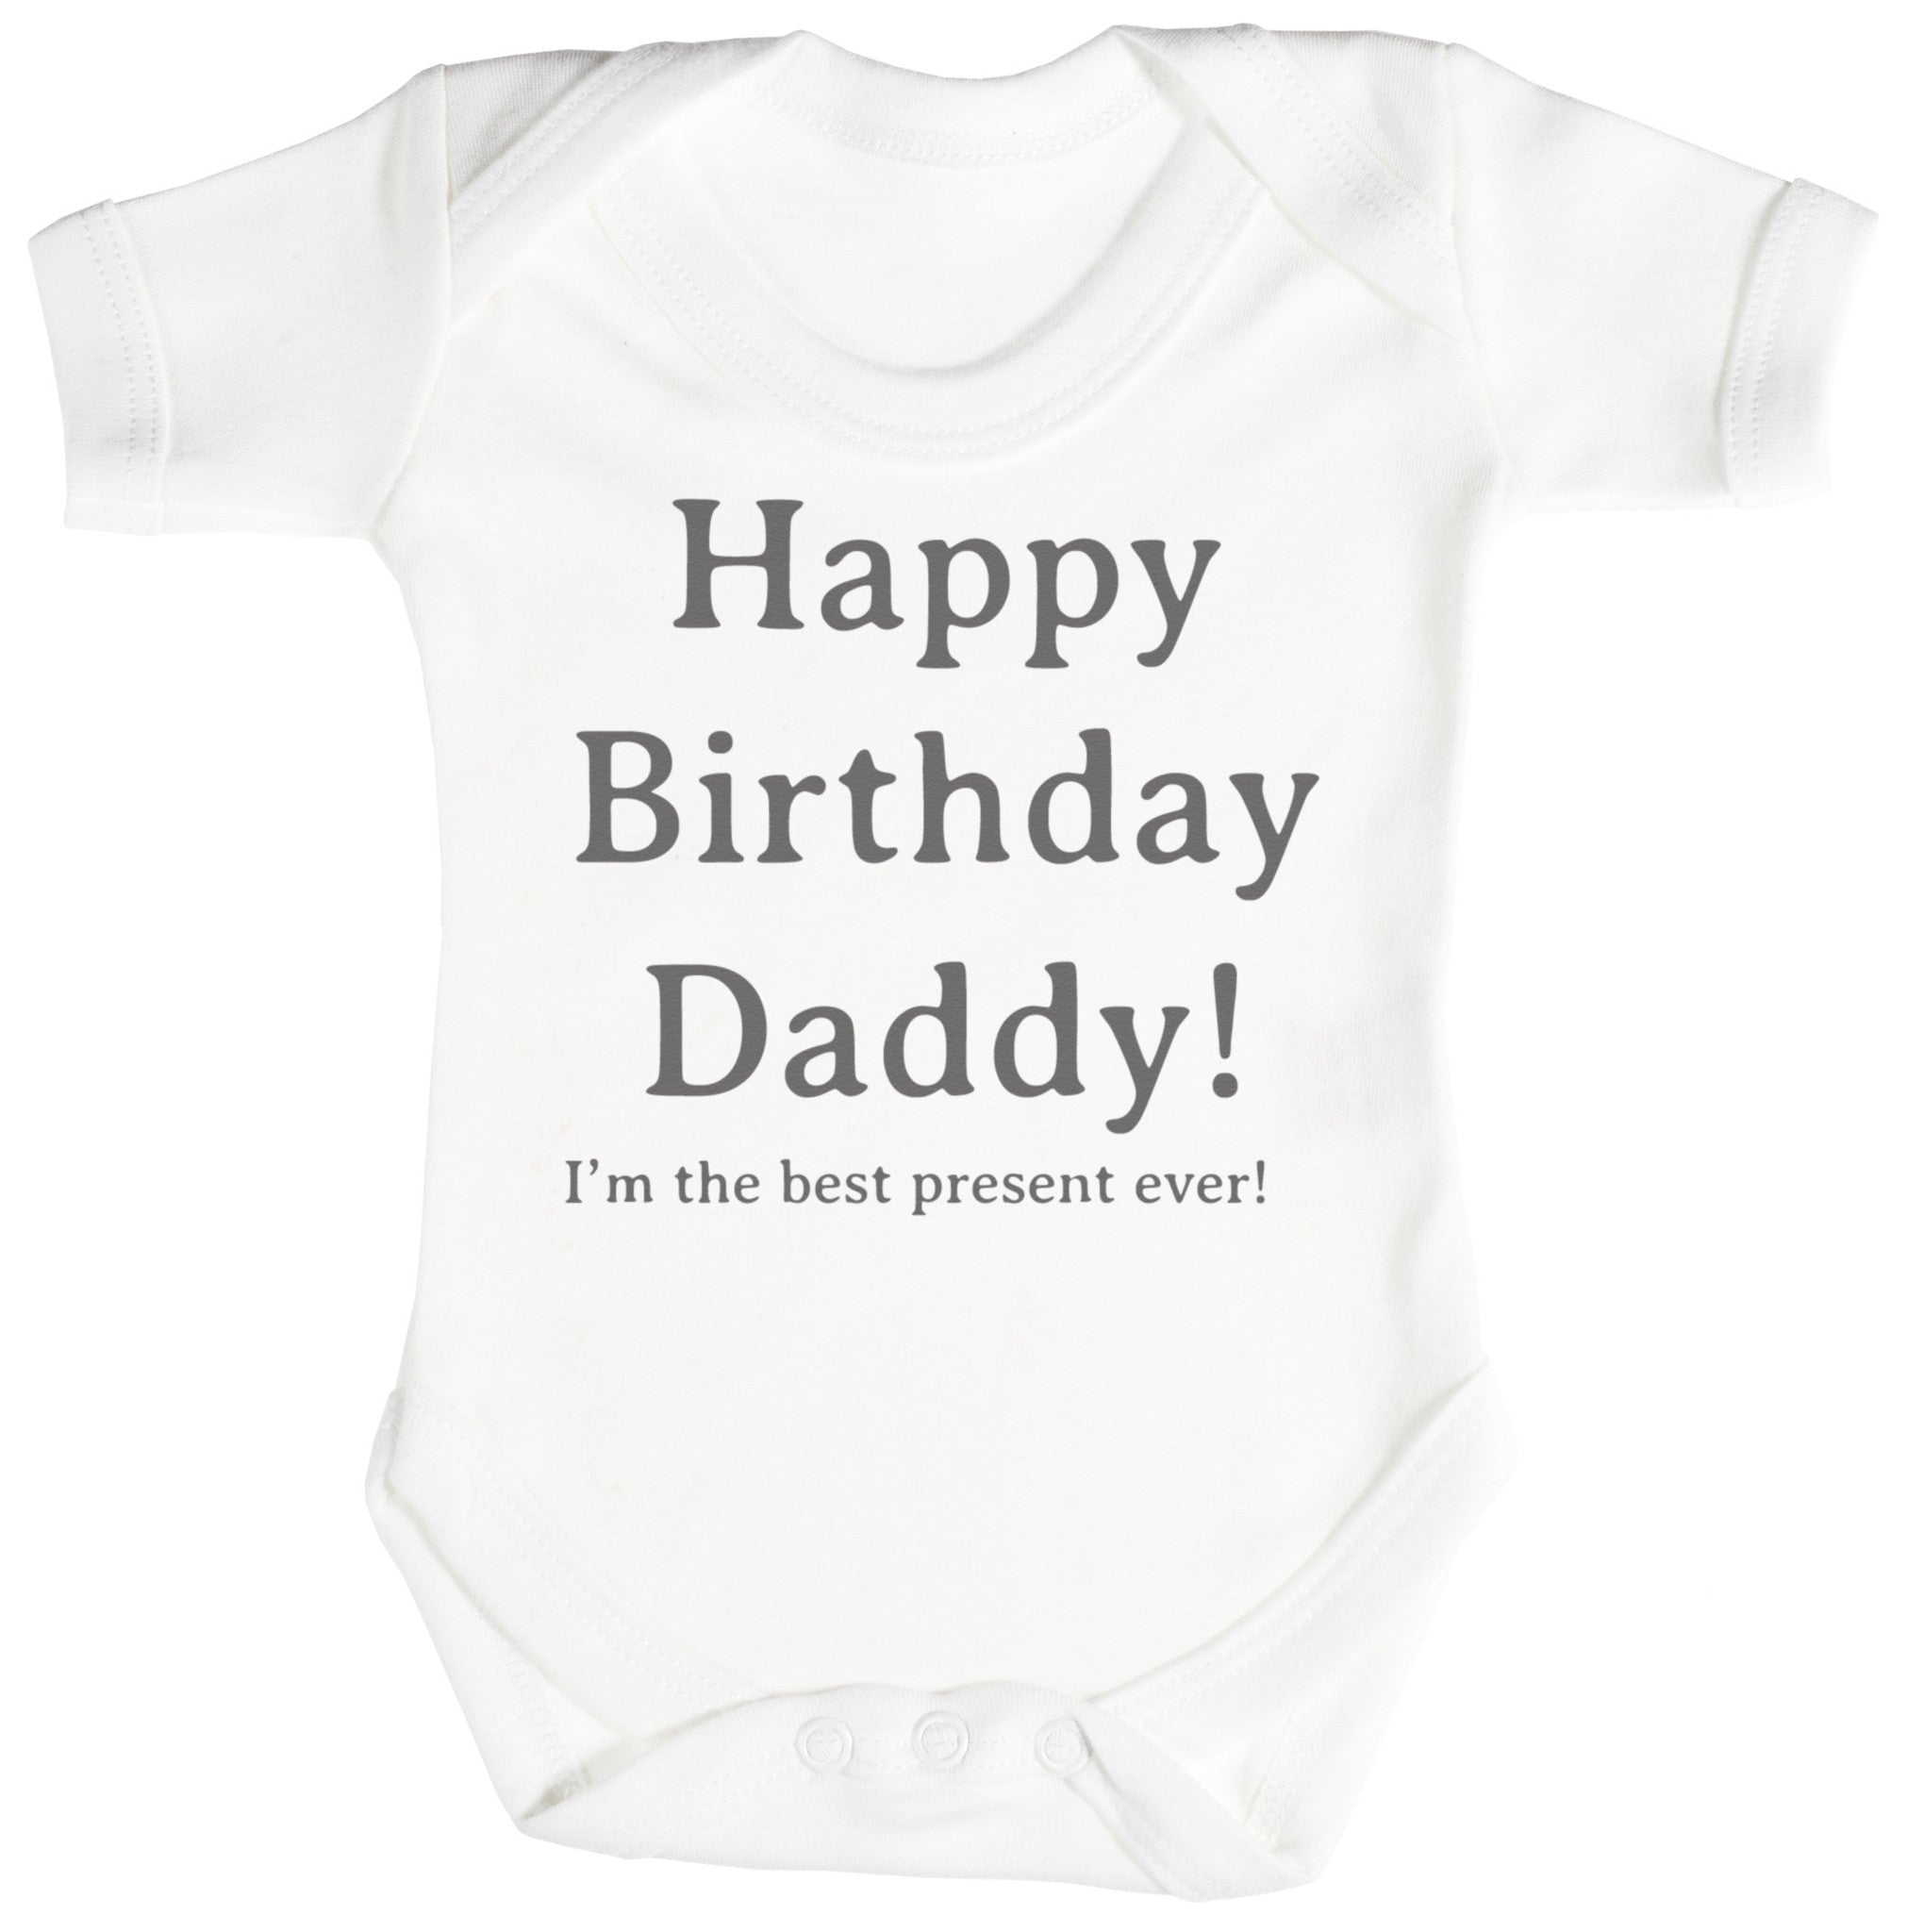 Happy Birthday Daddy Baby Bodysuit Babygrow